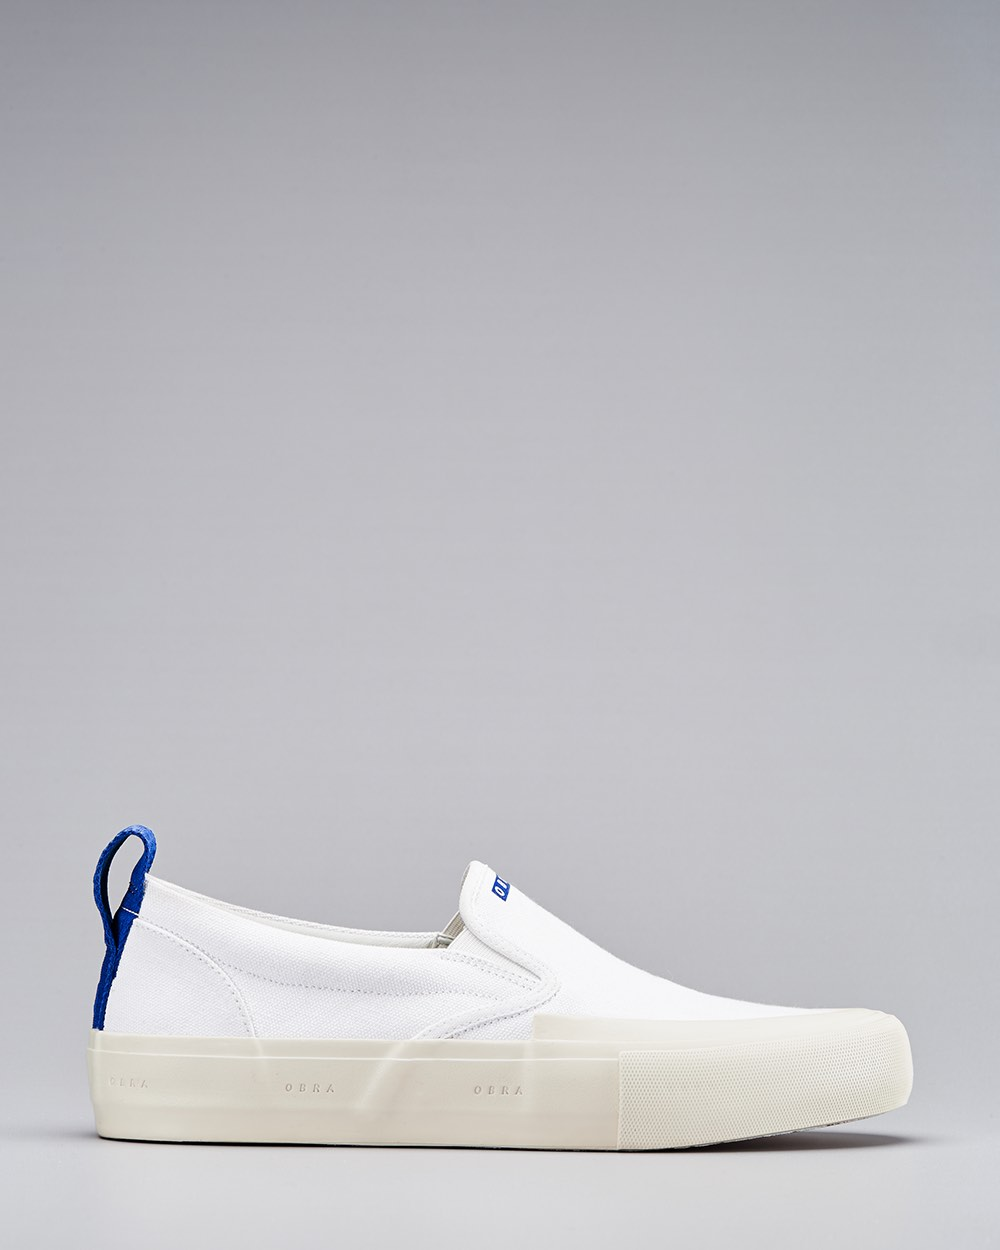 TERRA CANVAS SLIP-ON WRAP TOE<br />White/Off-White/OBRA Blue